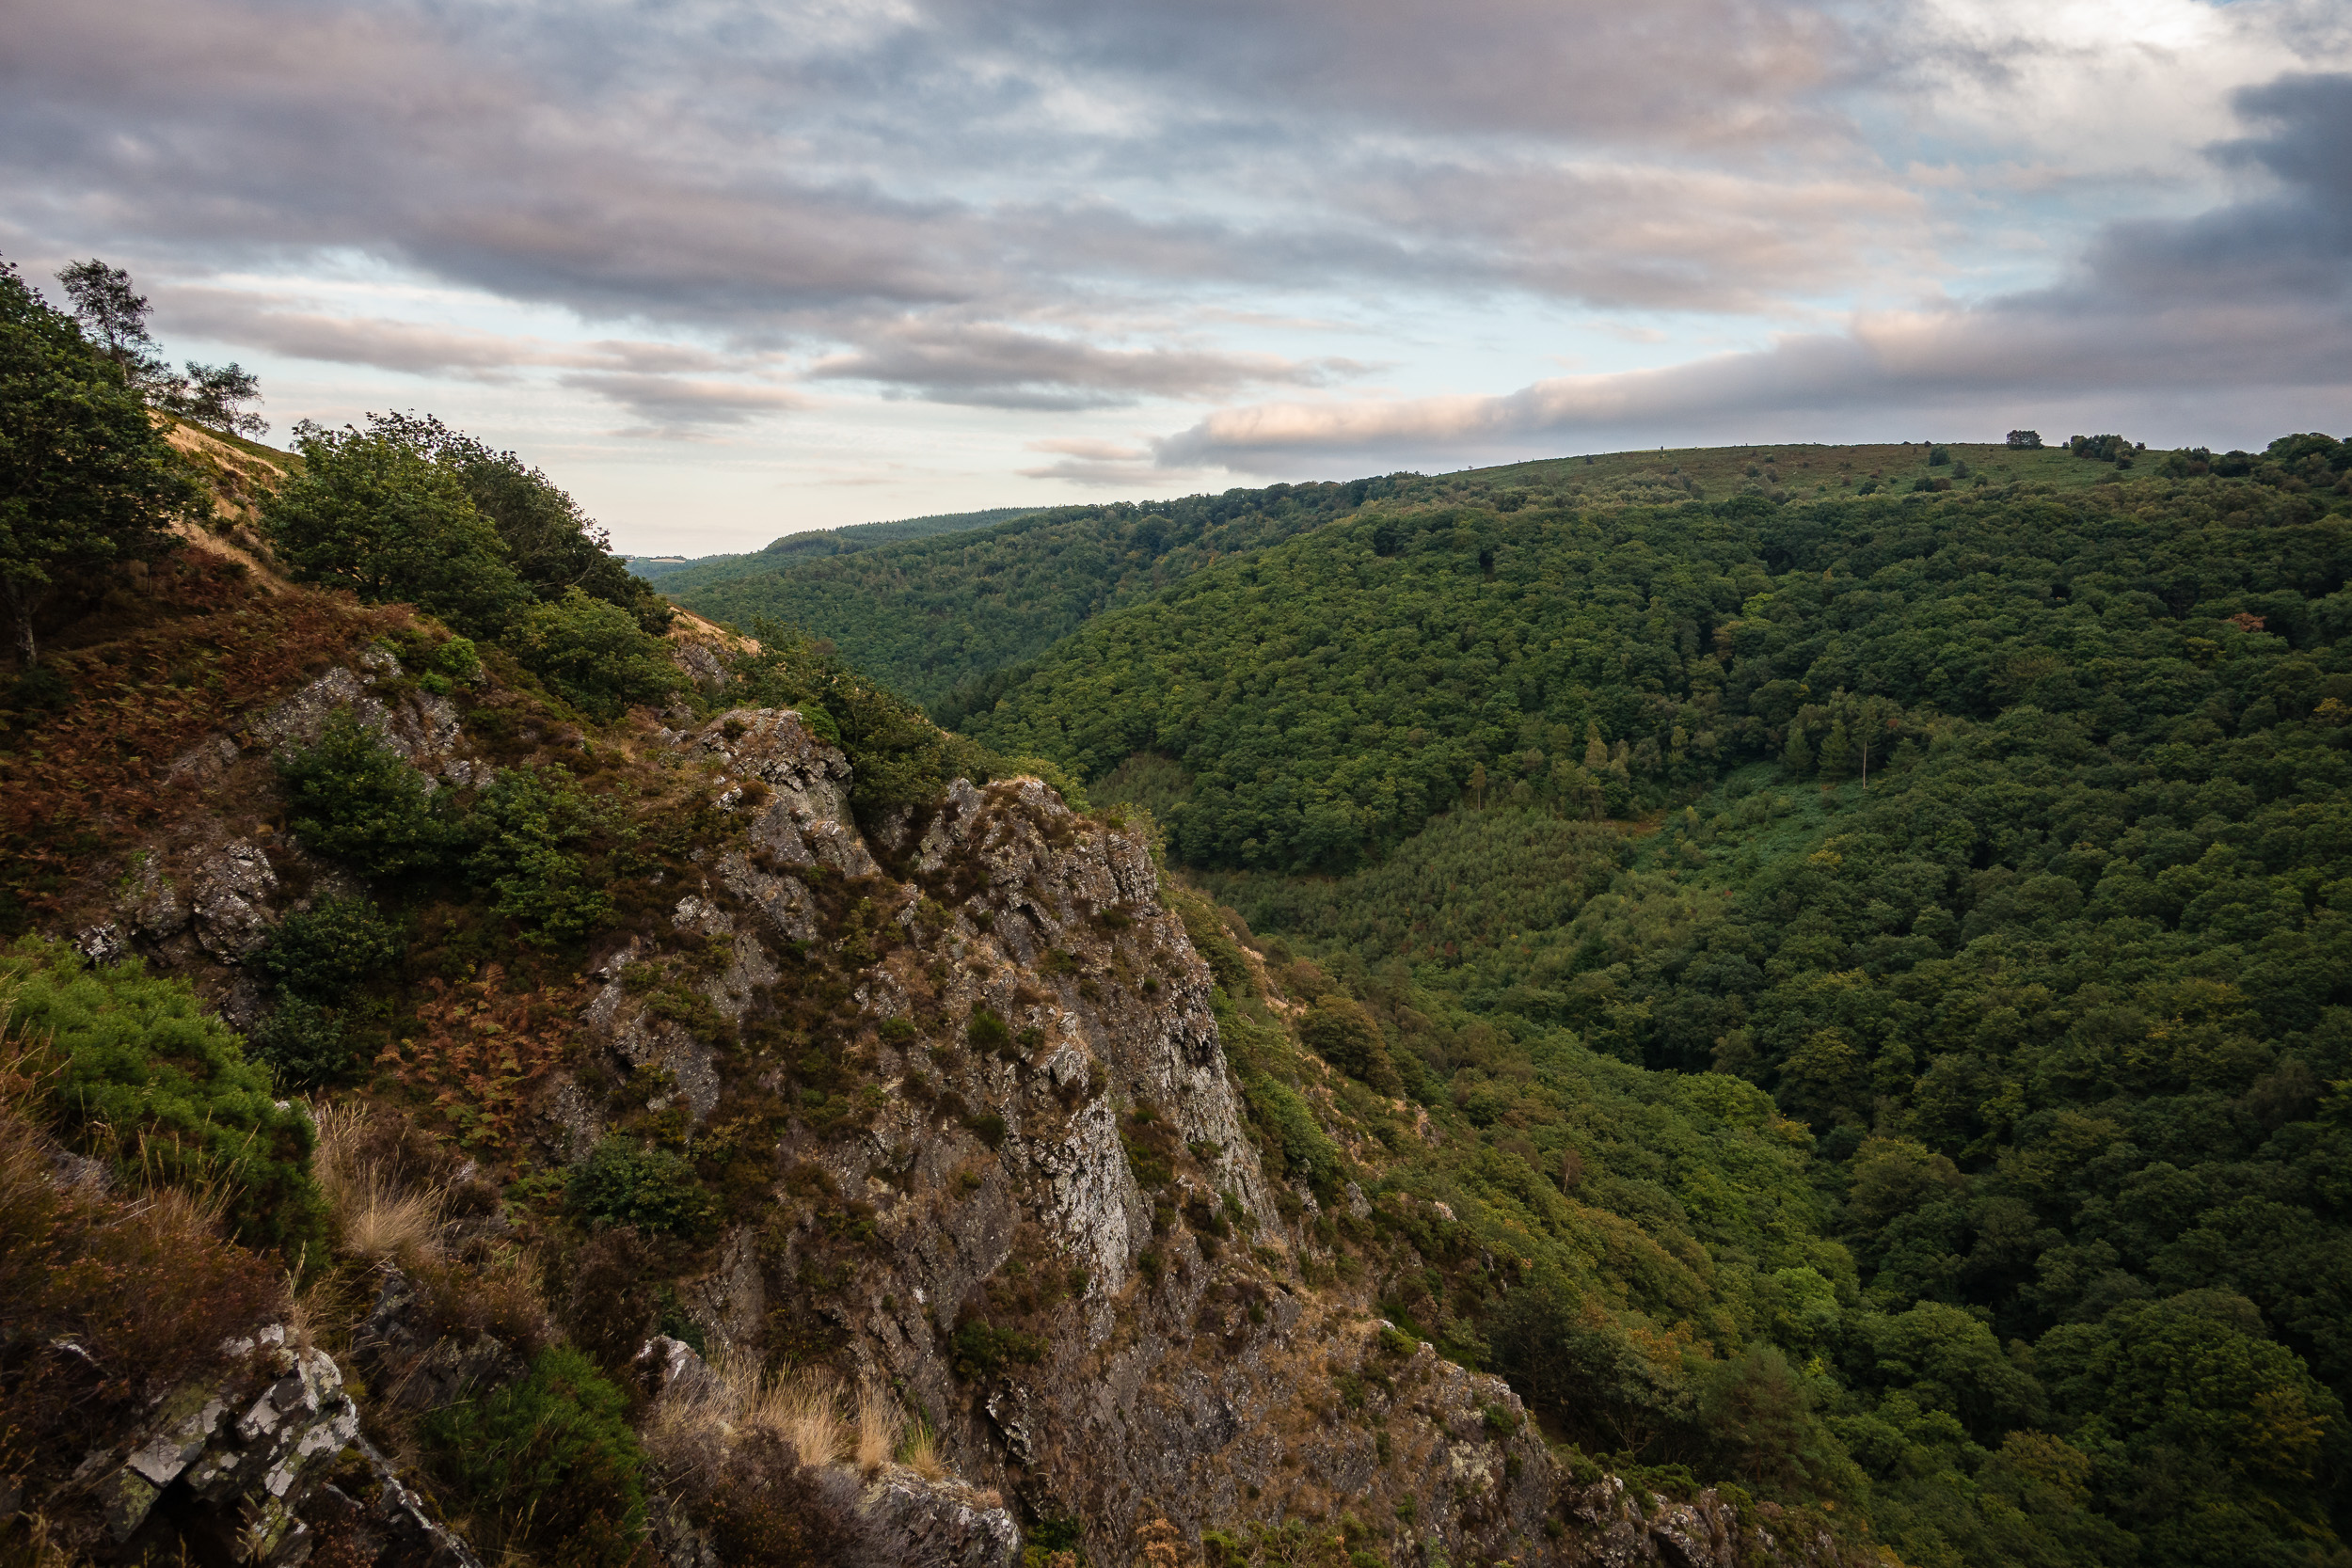 Teign Valley with Rocky Ledge